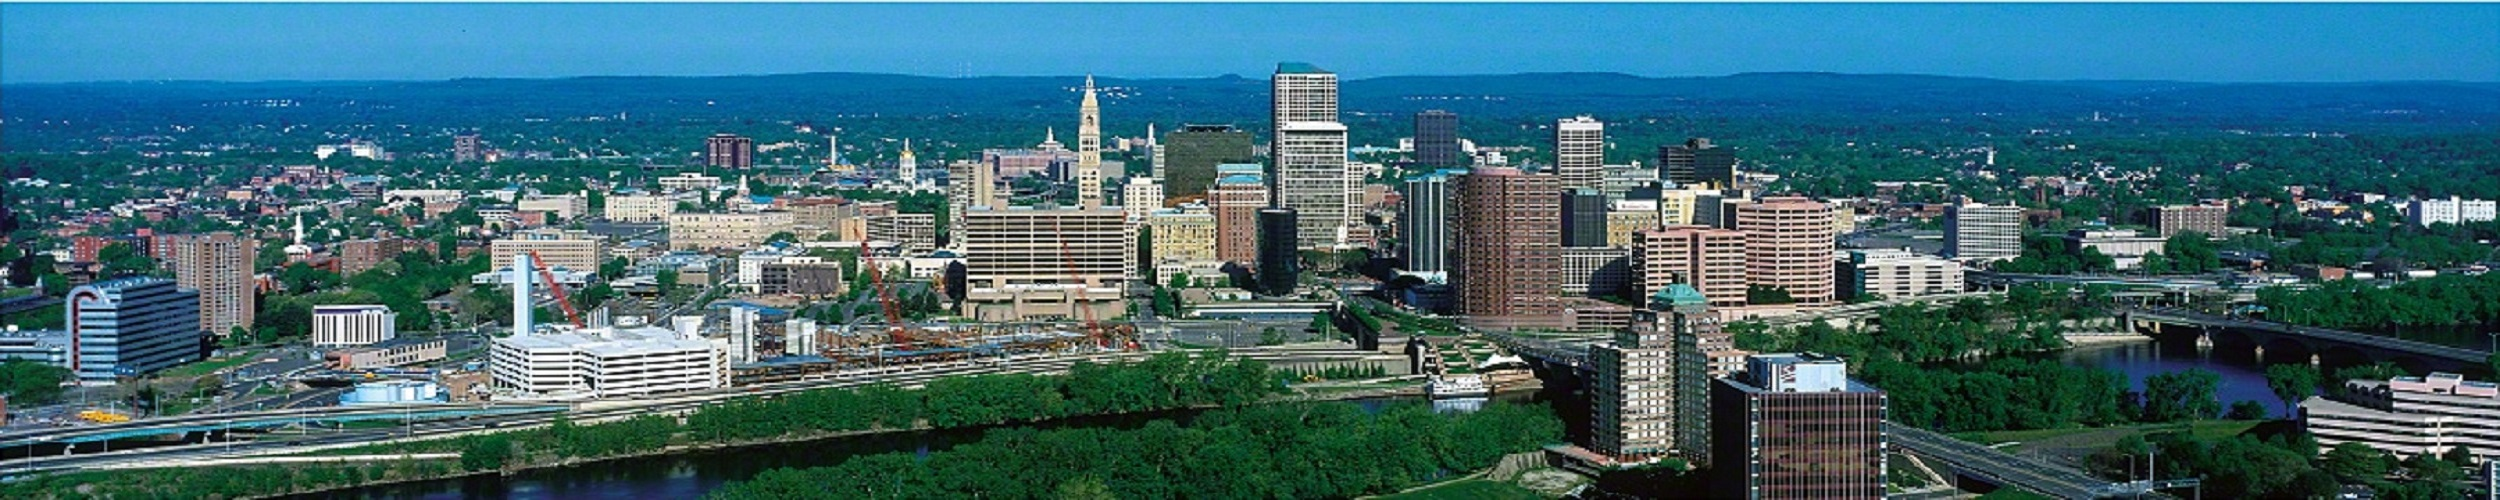 hartford-skyline